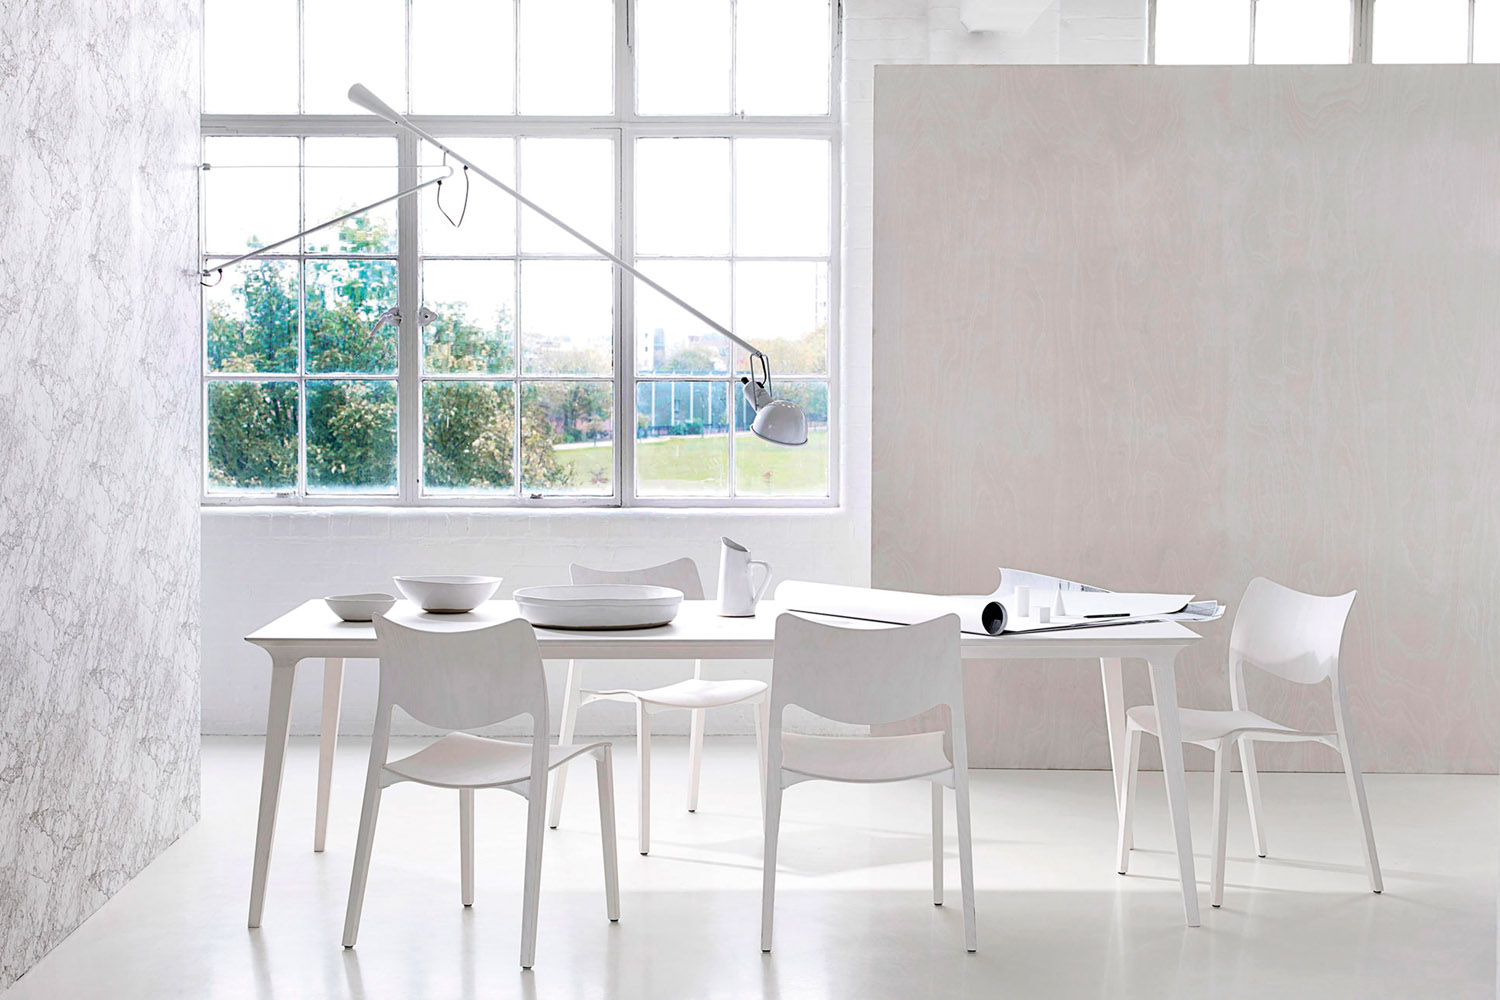 stua-laclasica-chair-white-heals